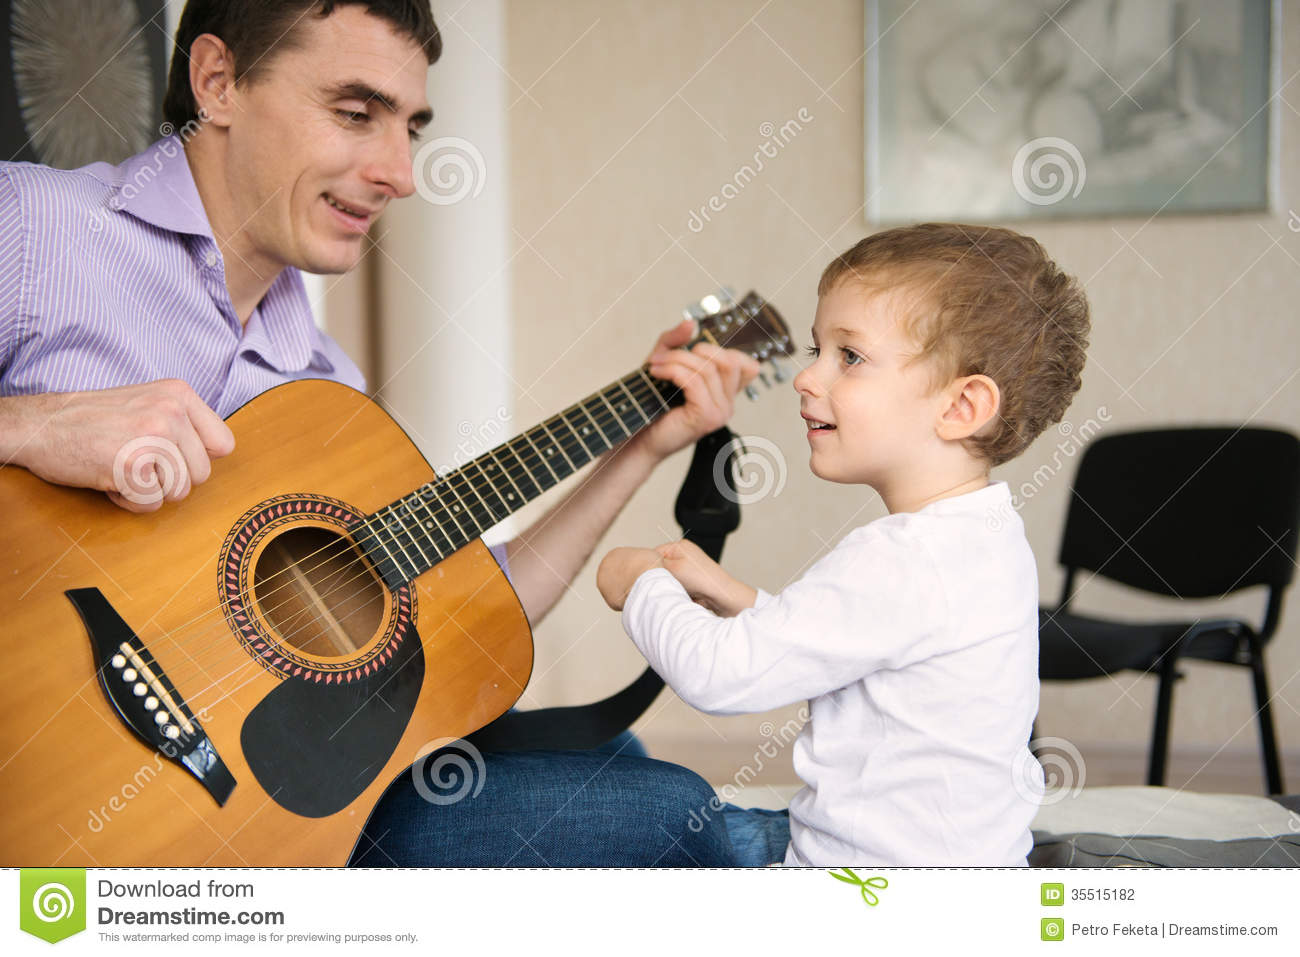 Guitar Lessons: Part 1: Father's Chords & Rhythm